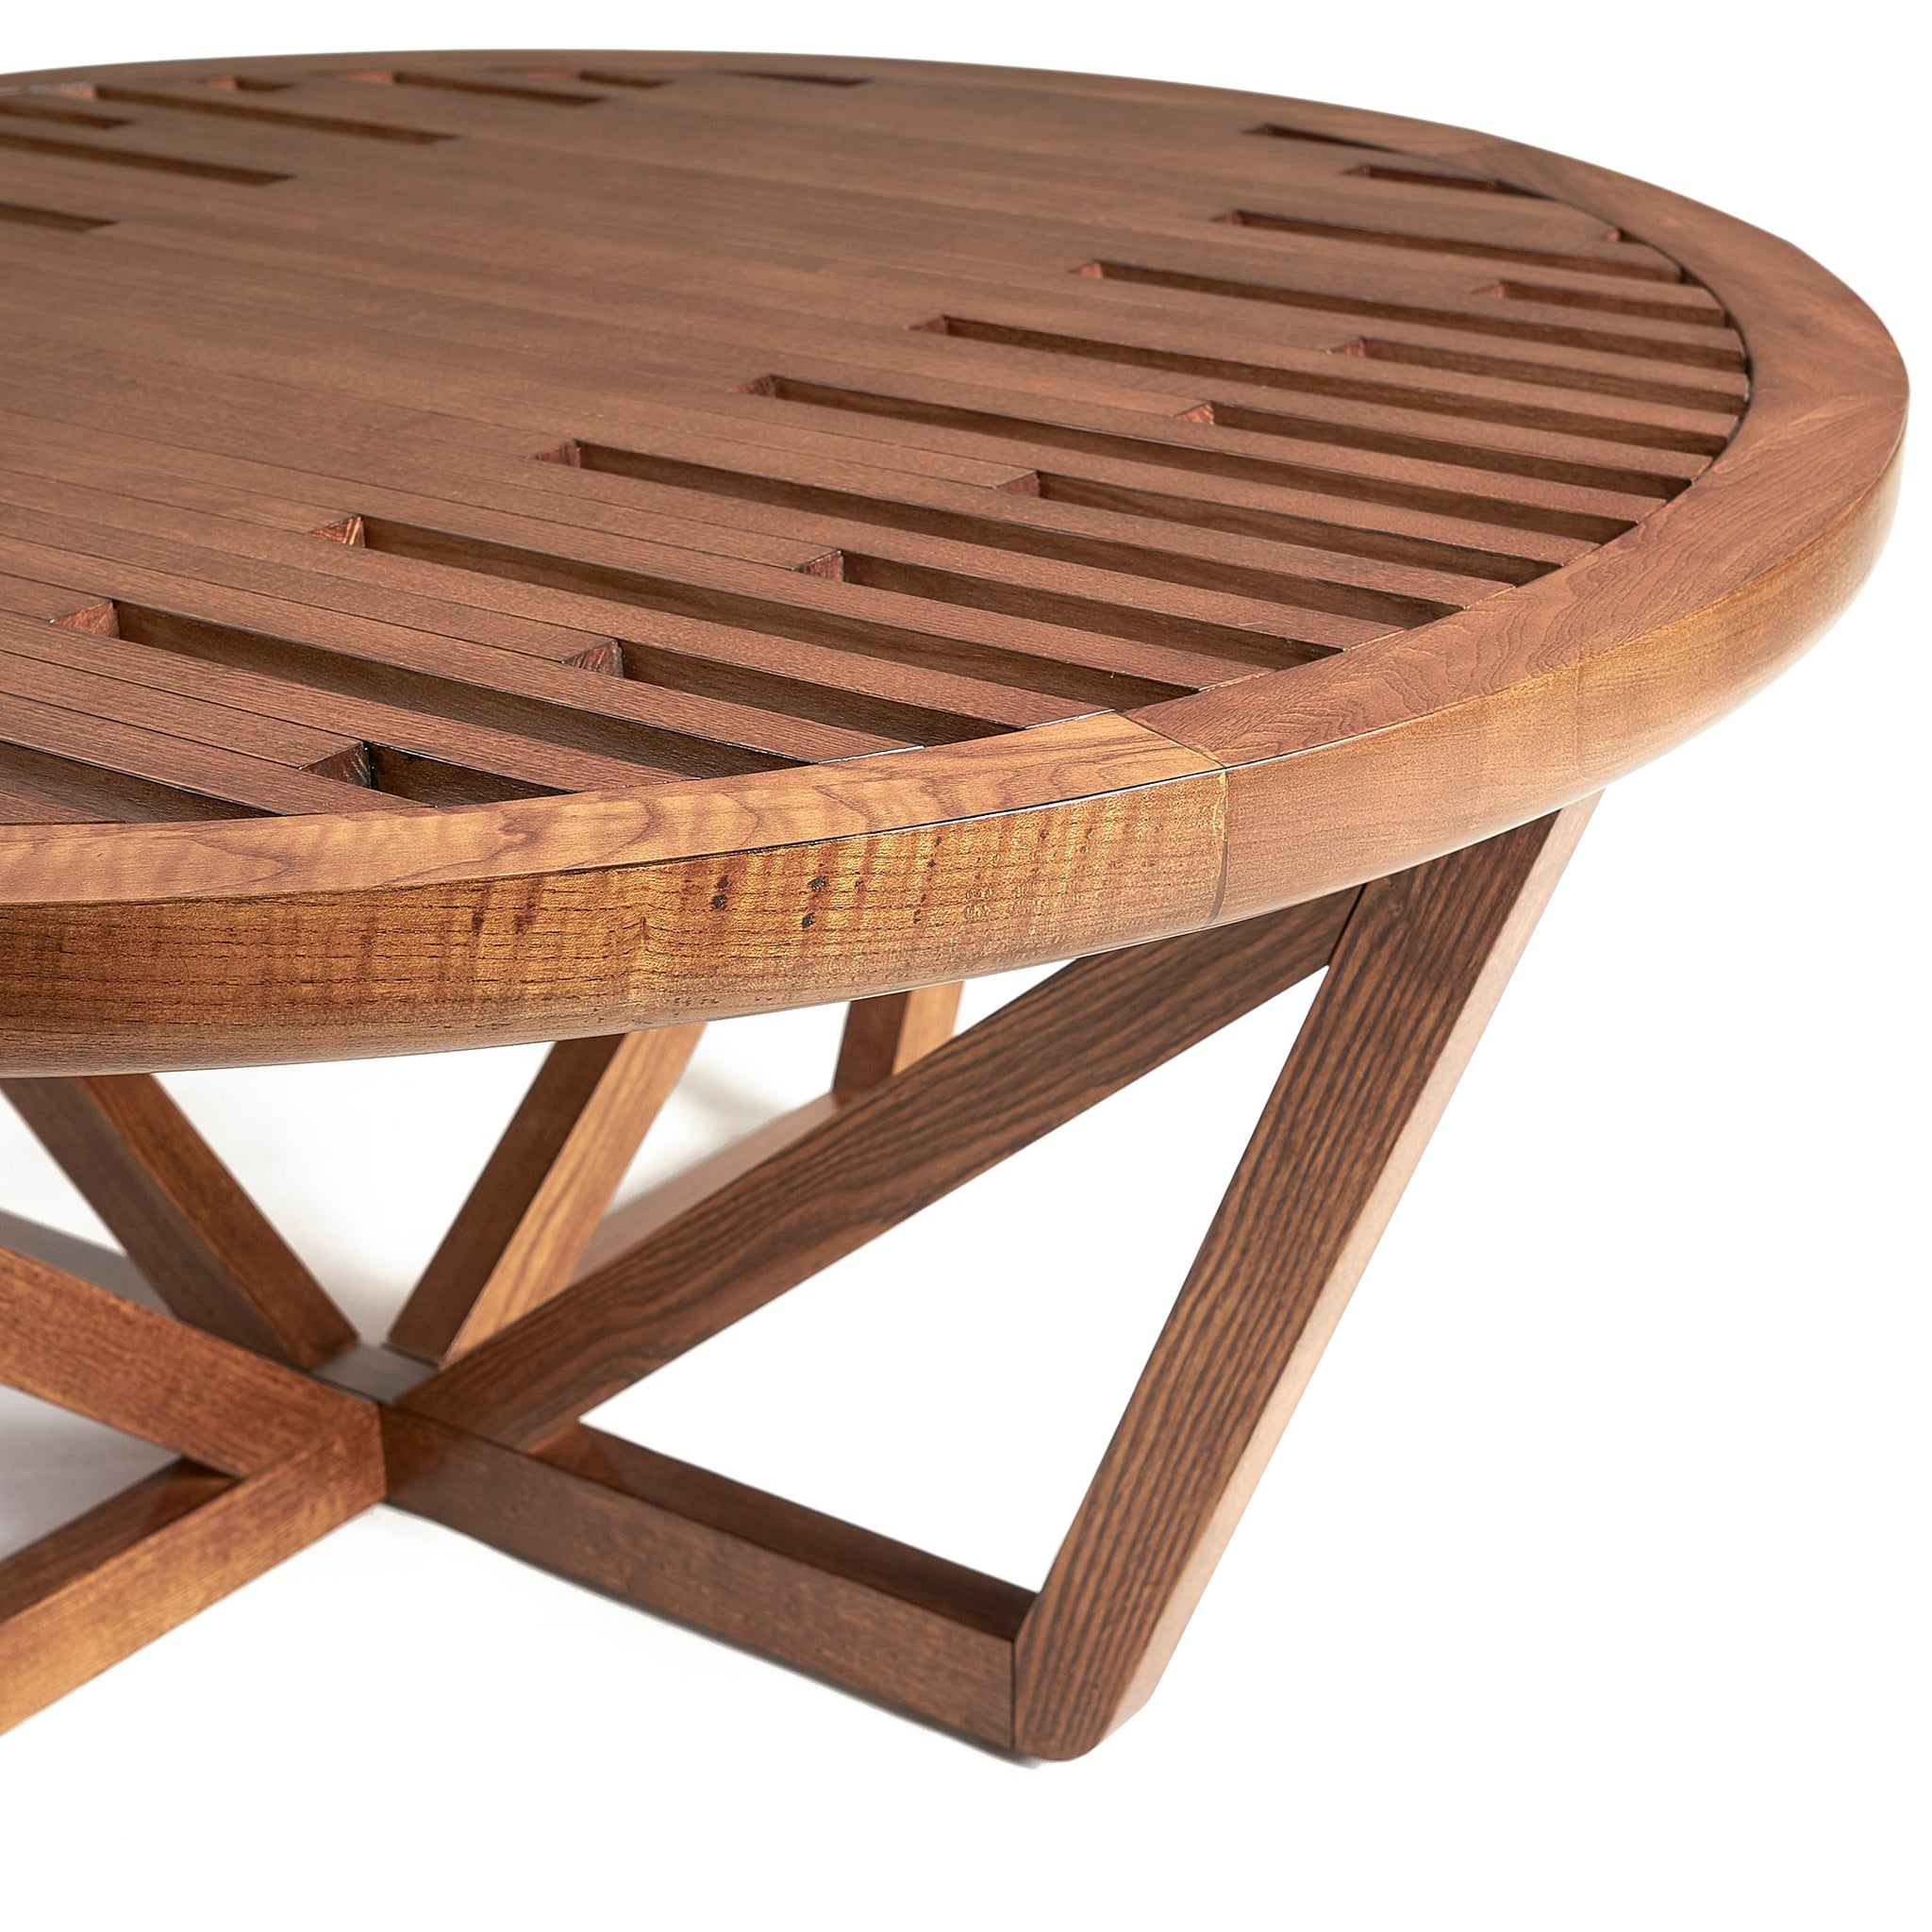 Komodo Solid Ash Coffee Table | ADDITIONAL 35% AT CHECKOUT CODE: RETRO MAN